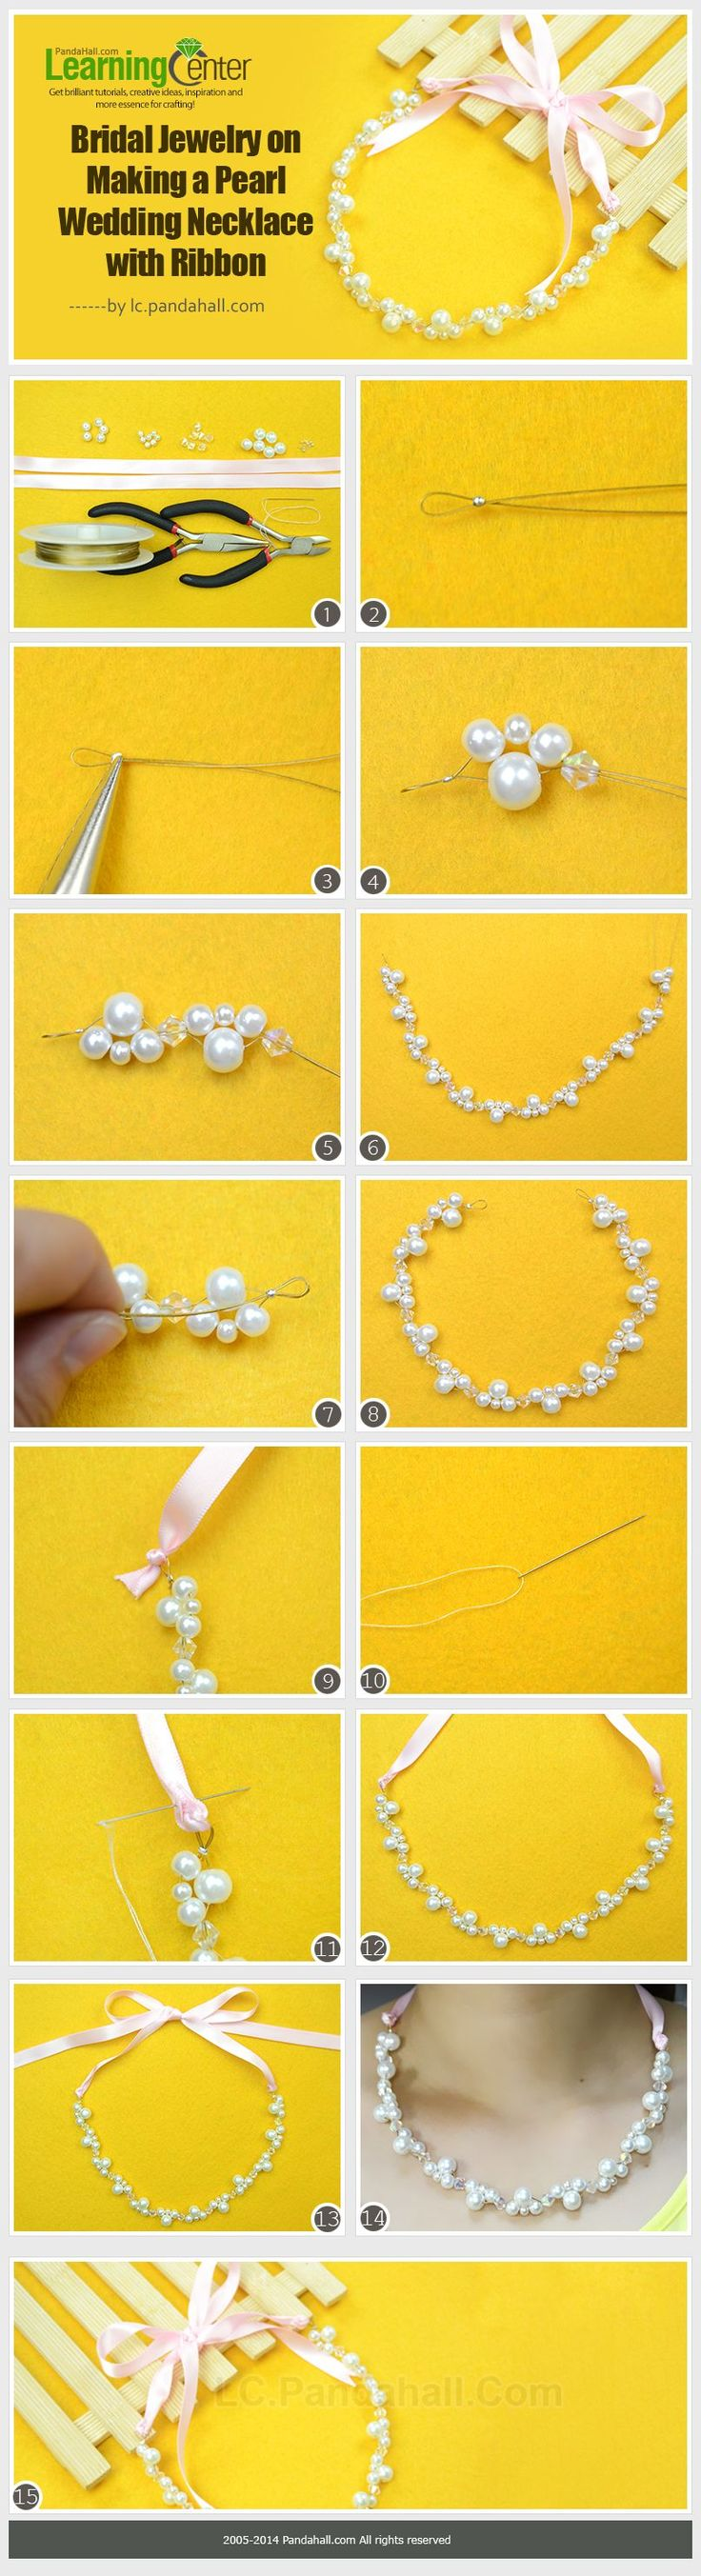 Bridal Jewelry on Making a Pearl Wedding Necklace with Ribbon. Great to make for the bridal party! #weddings